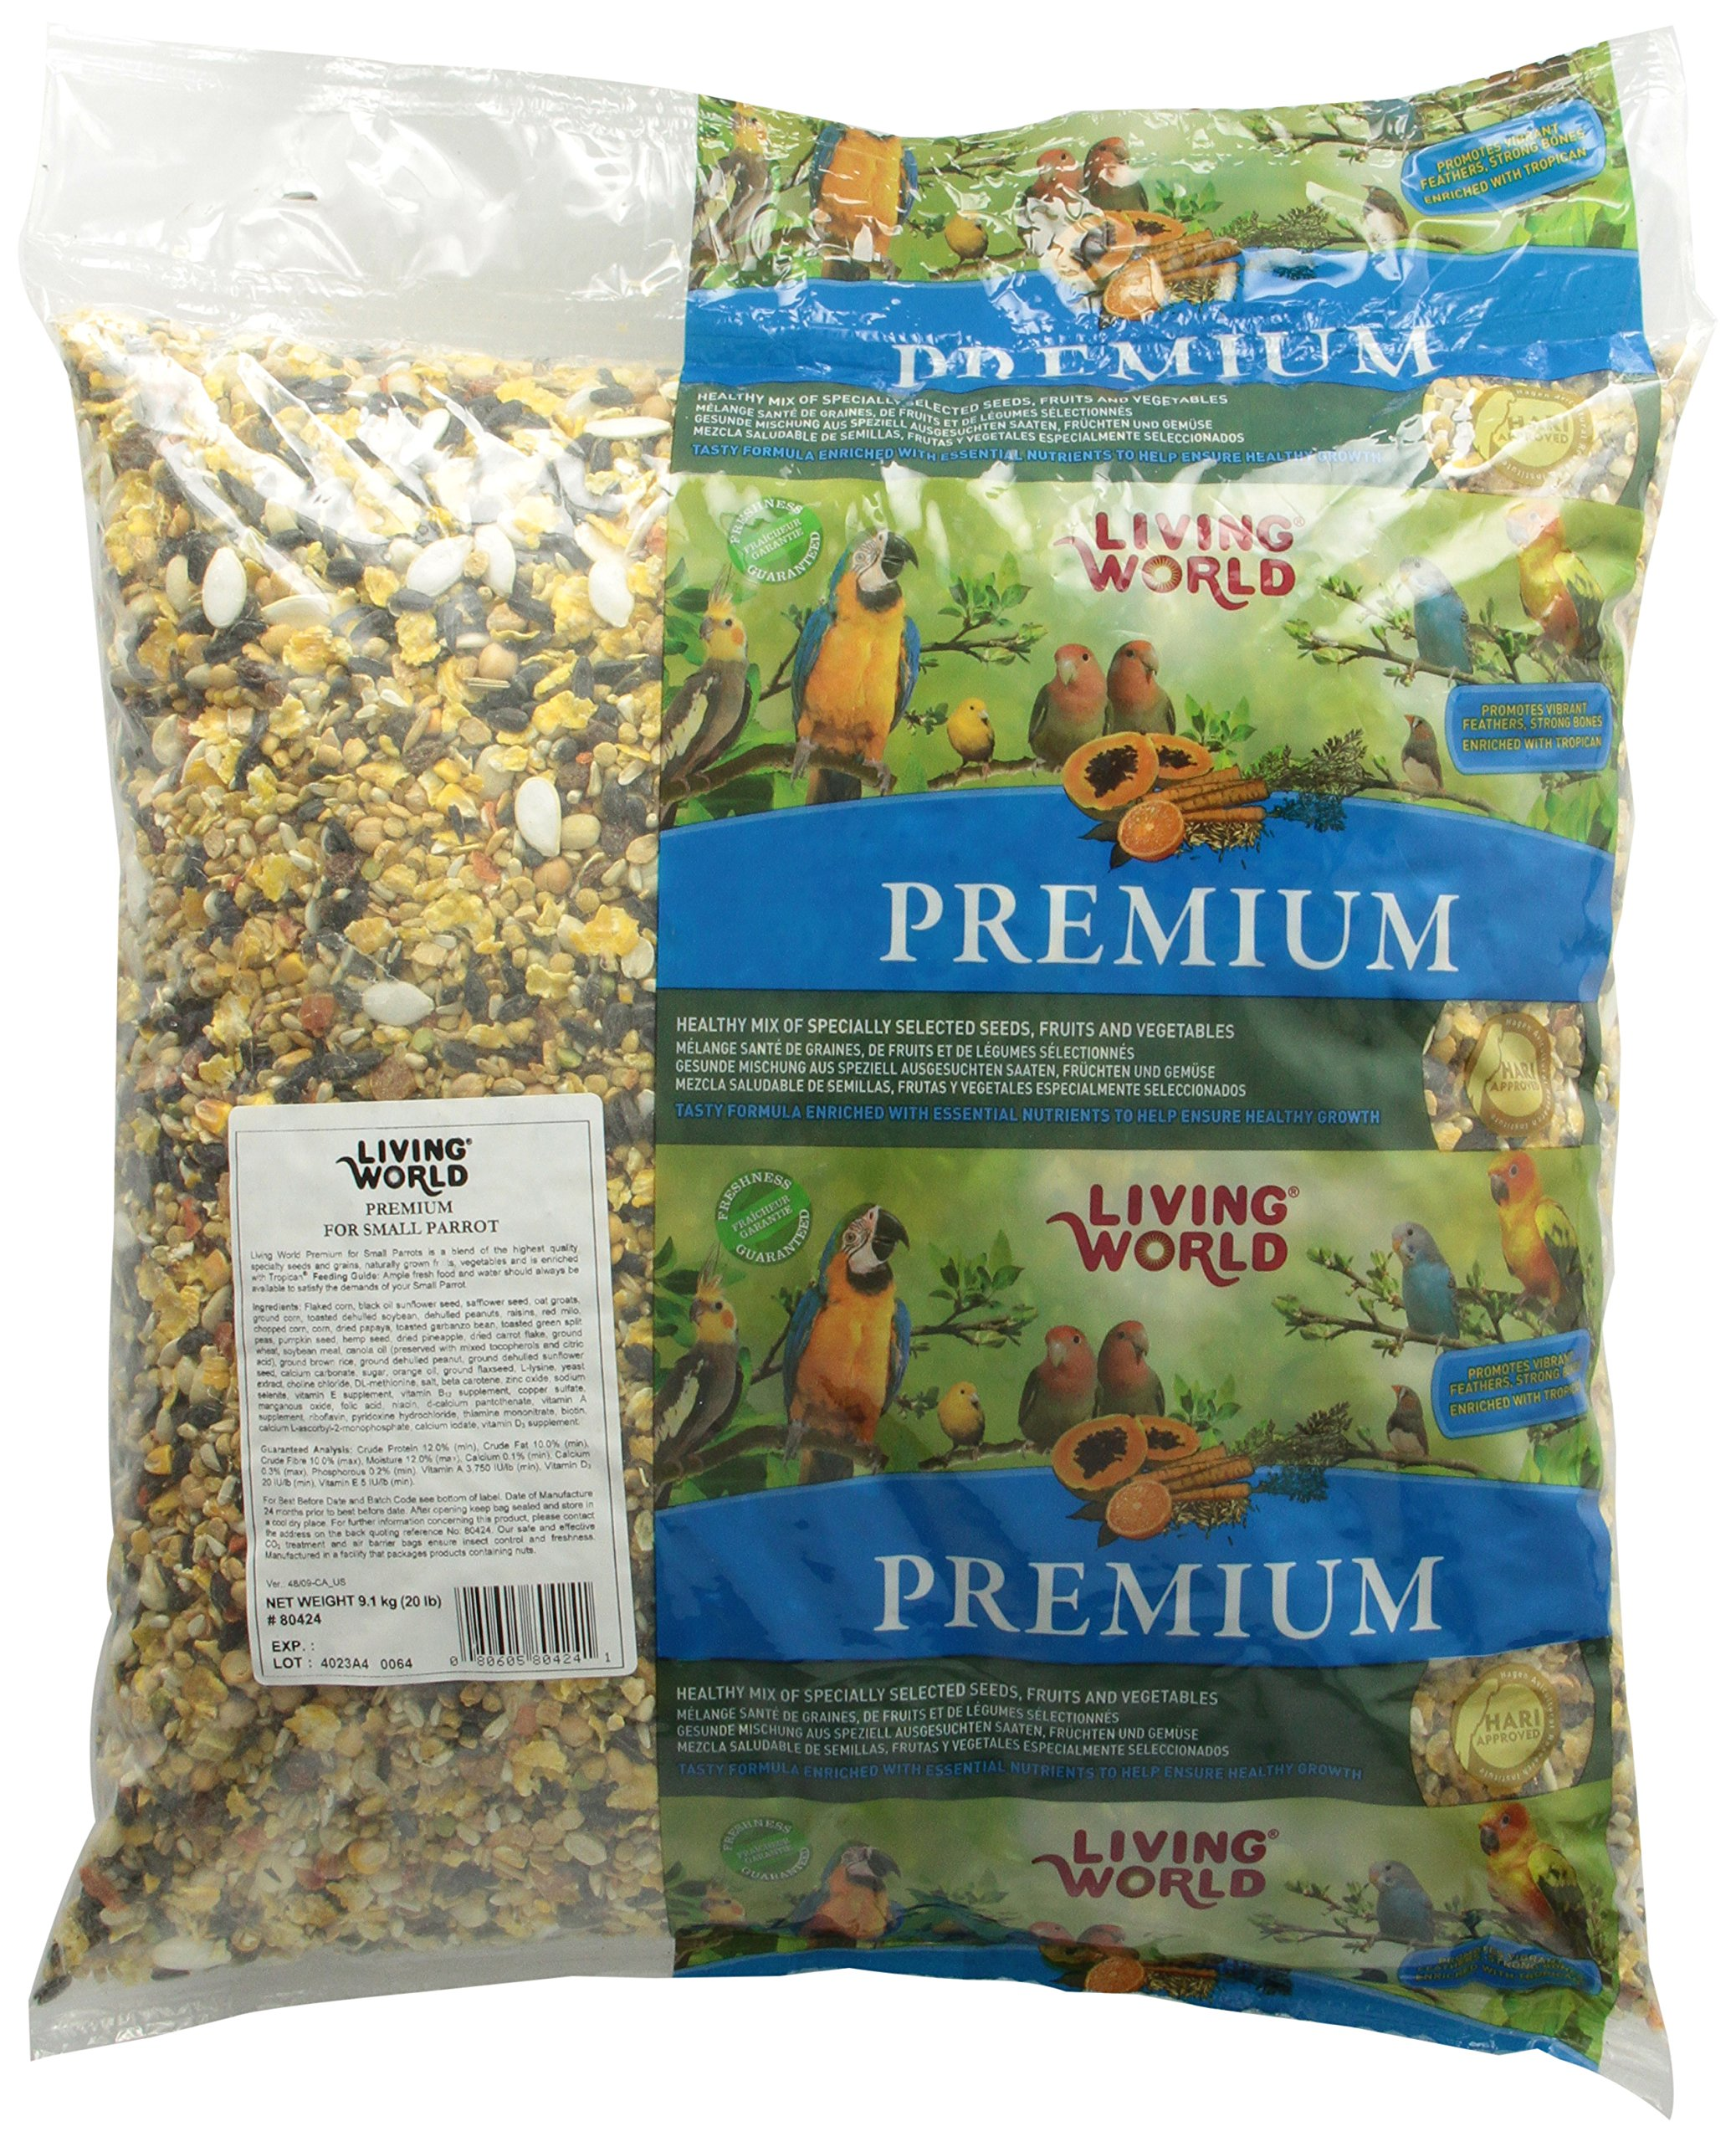 Living World Small Parrots Premium Mix With Pillow Bulk Bag, 20-Pound by Living World